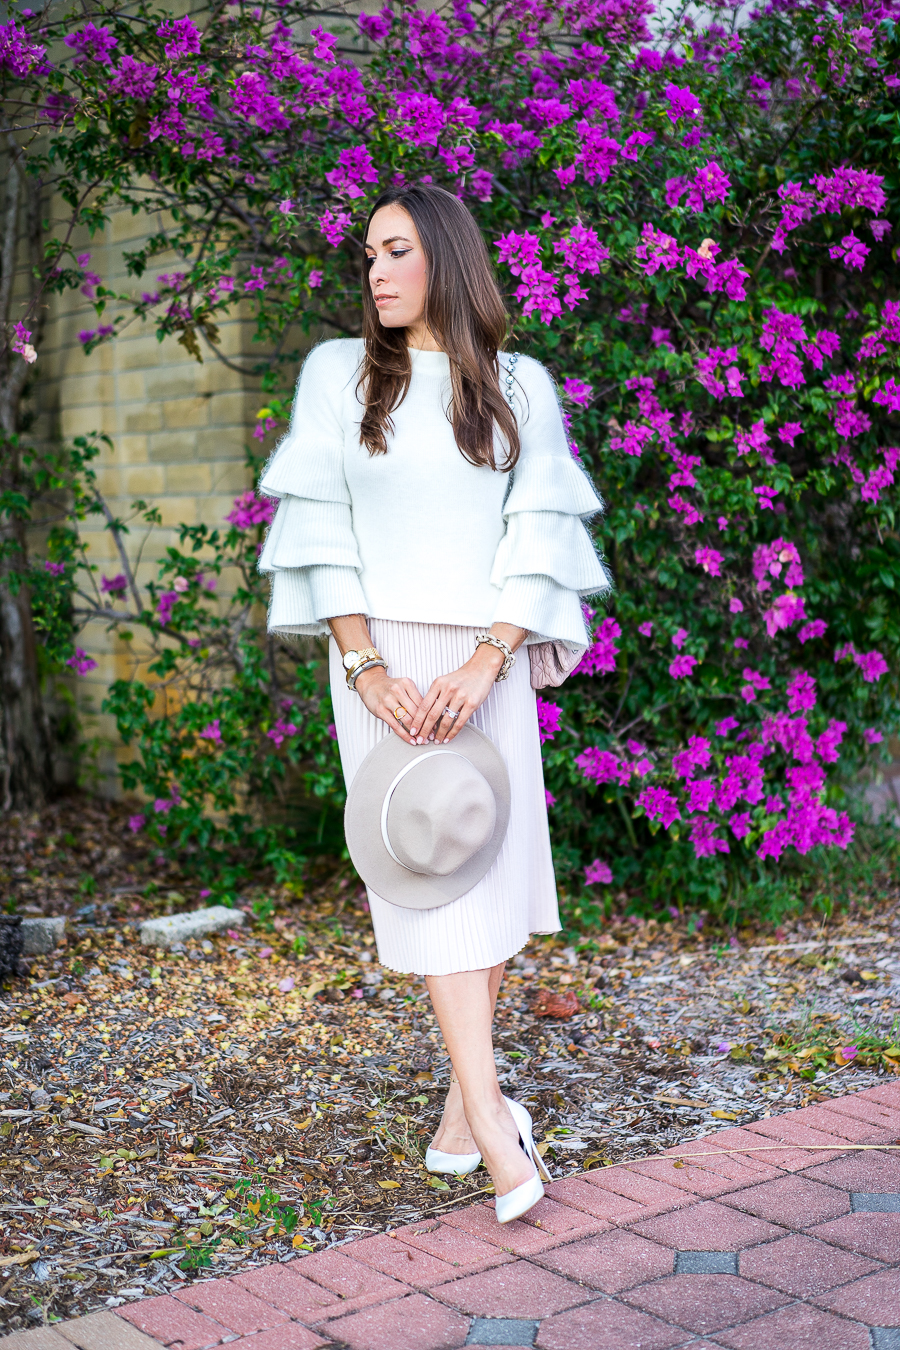 A Glam Lifestyle fashion blogger wearing Endless Rose tiered sleeve sweater and blush pleated midi skirt with Miu Miu bag and white pumps